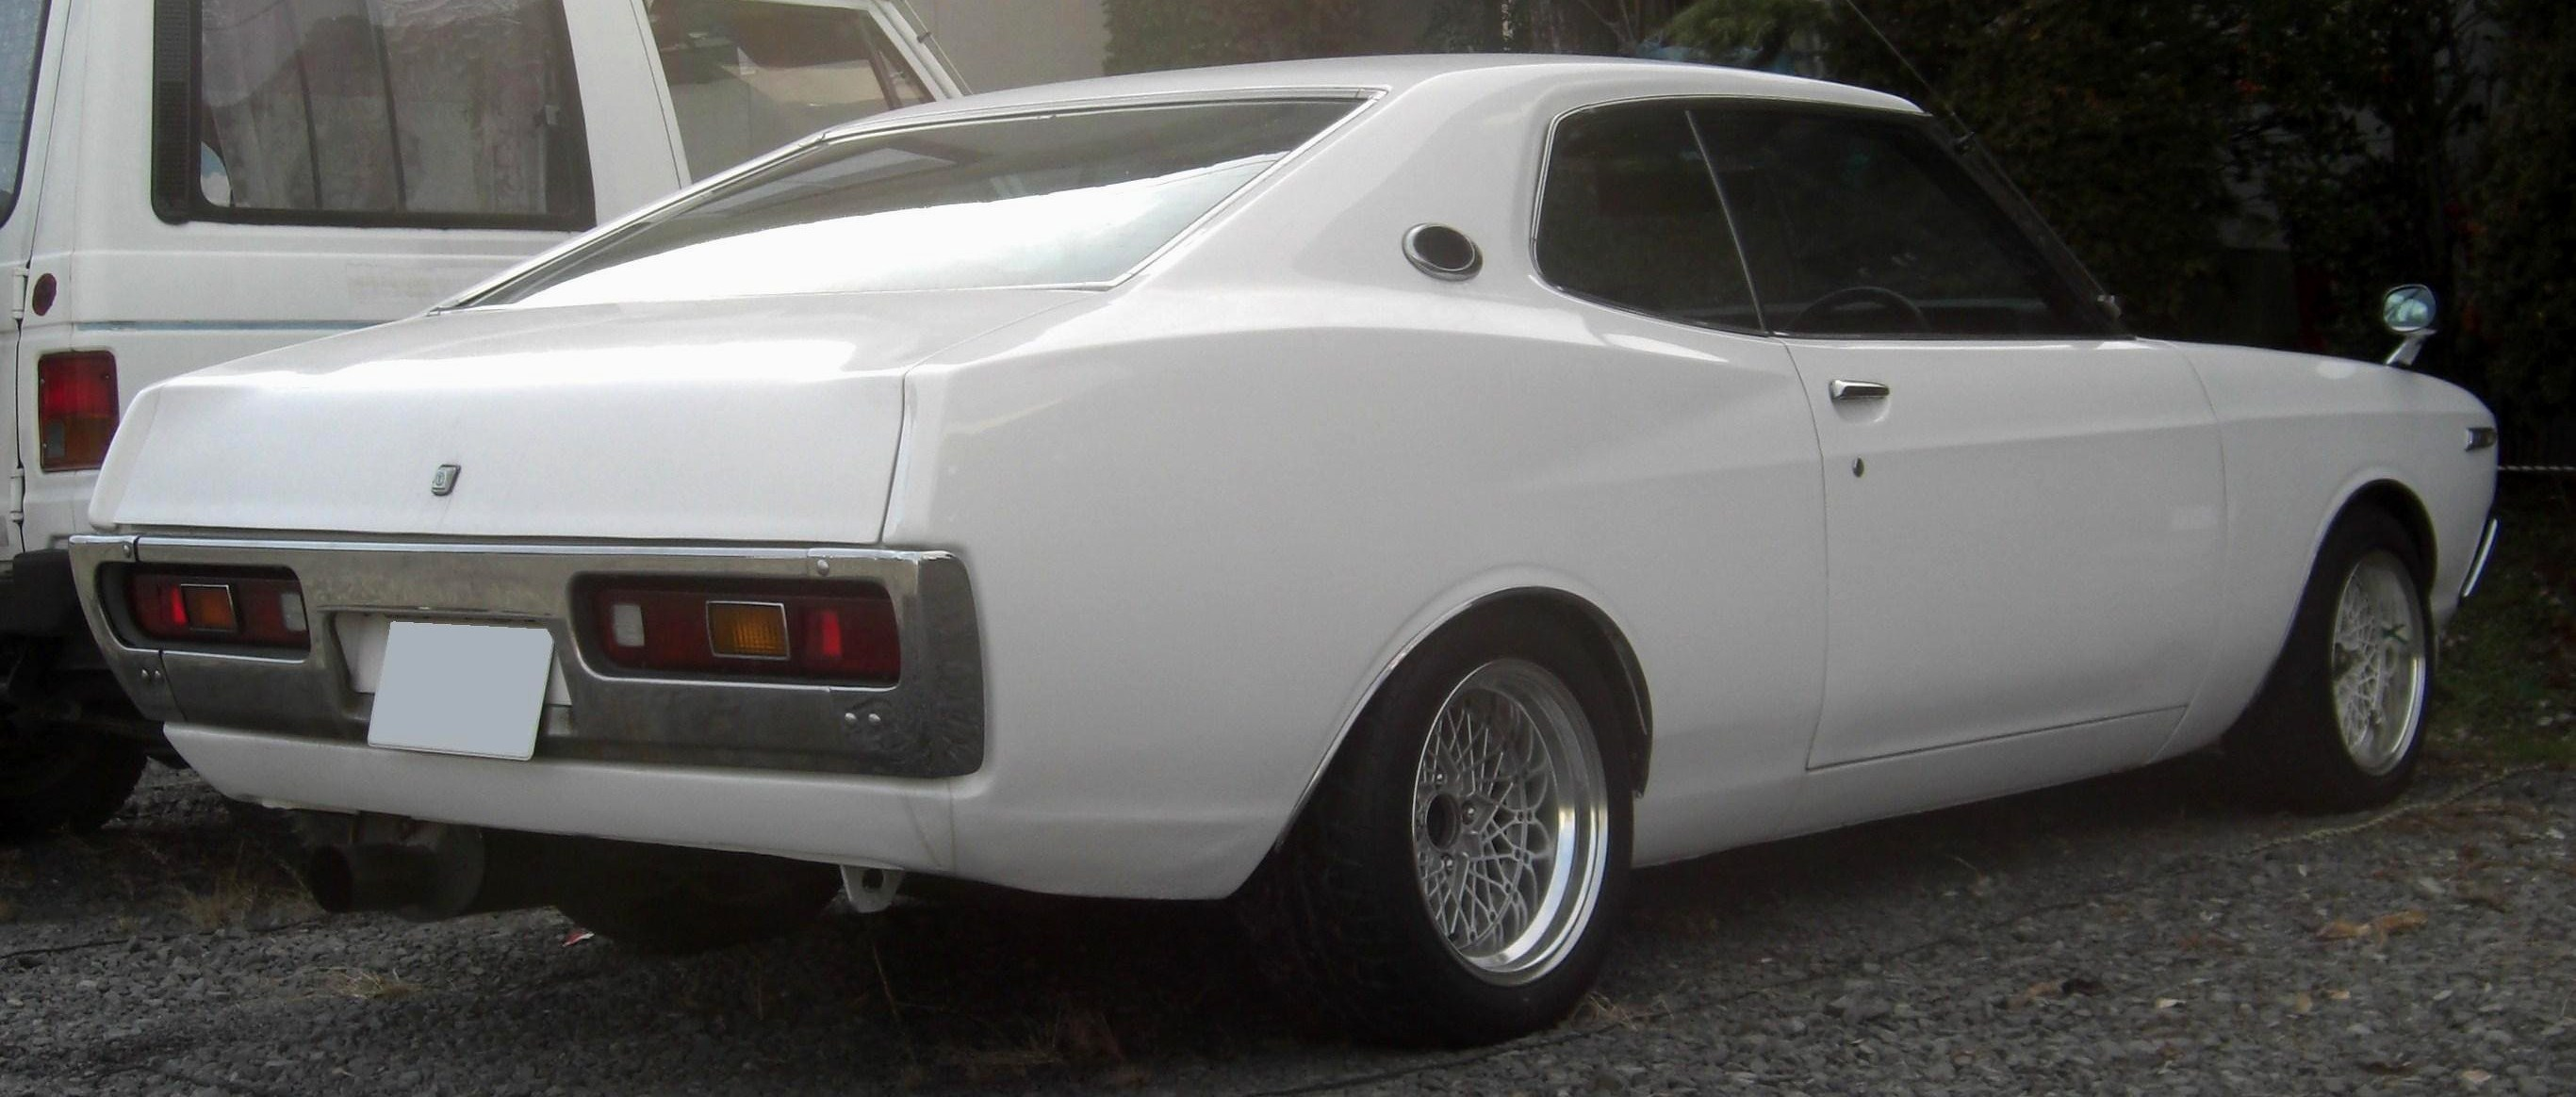 1980 Nissan Laurel #17